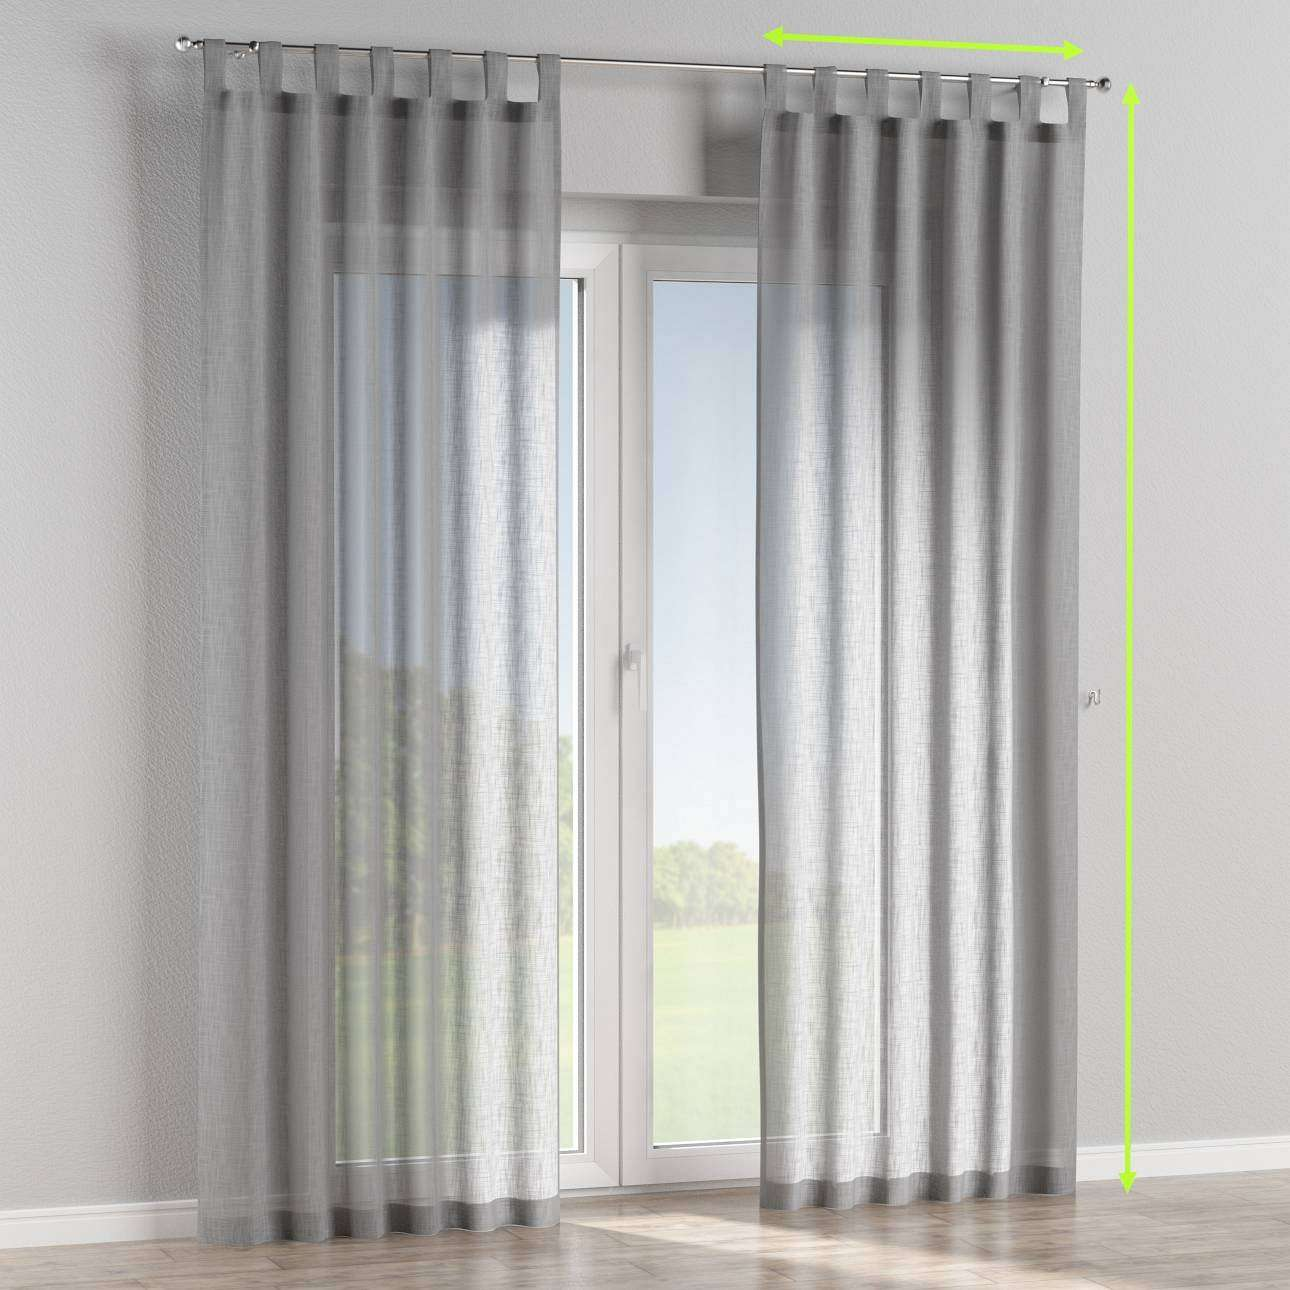 Tab top curtains in collection Romantica, fabric: 128-08